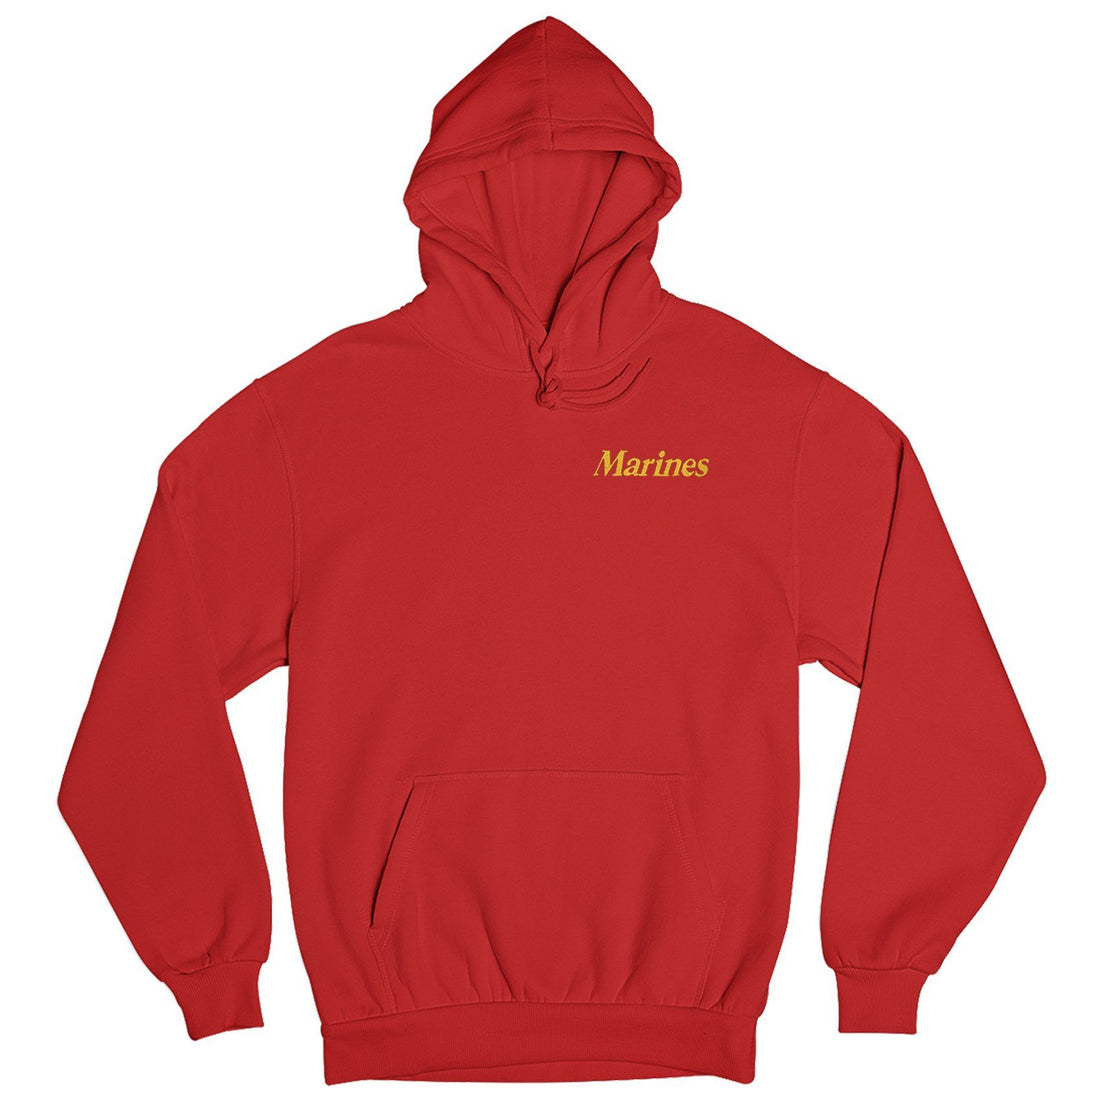 Marines Embroidered Hoodie - Marine Corps Direct